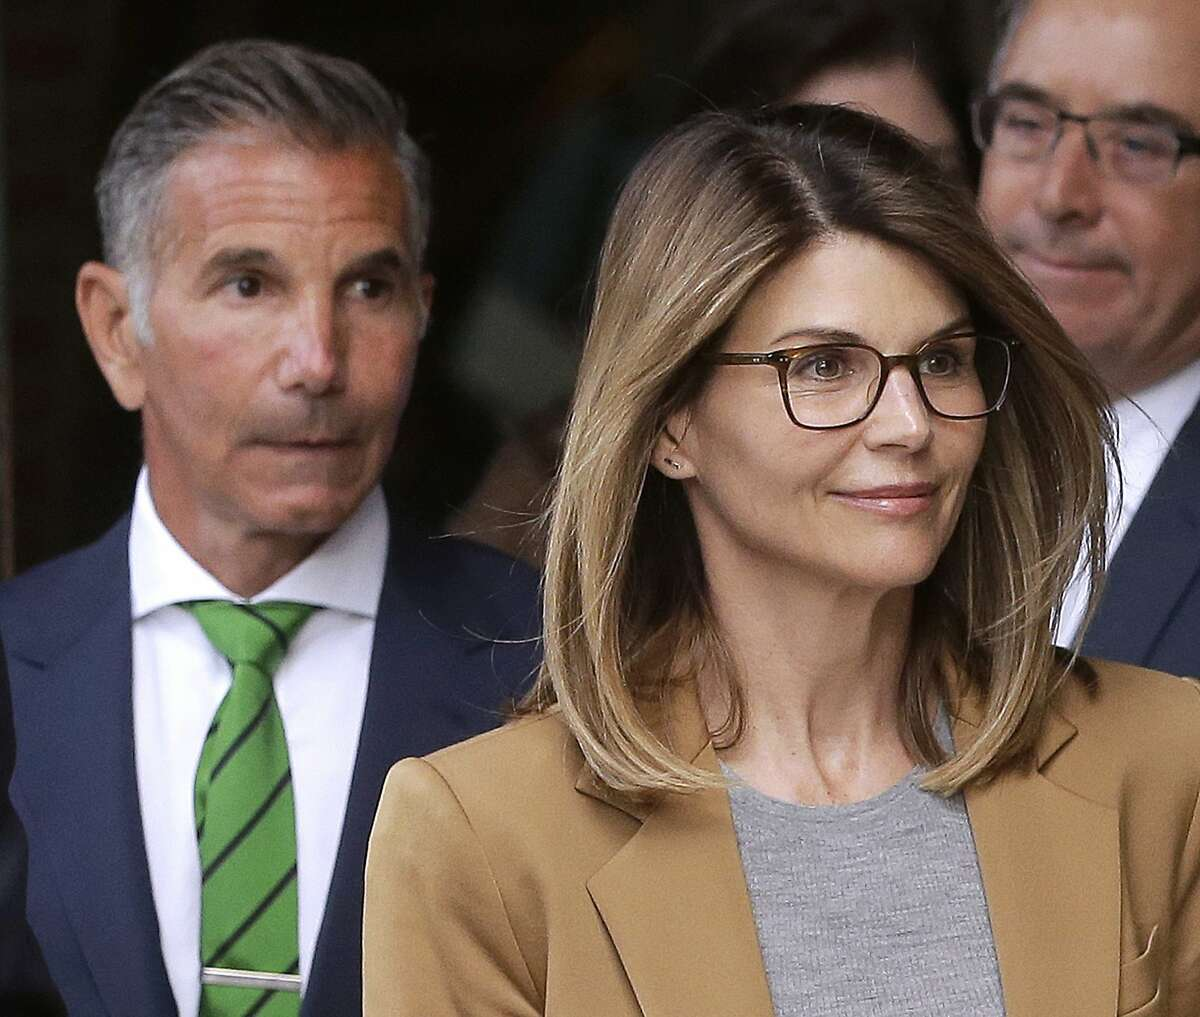 FILE - In this April 3, 2019 file photo, actress Lori Loughlin, front, and husband, clothing designer Mossimo Giannulli, left, depart federal court in Boston after facing charges in a nationwide college admissions bribery scandal.